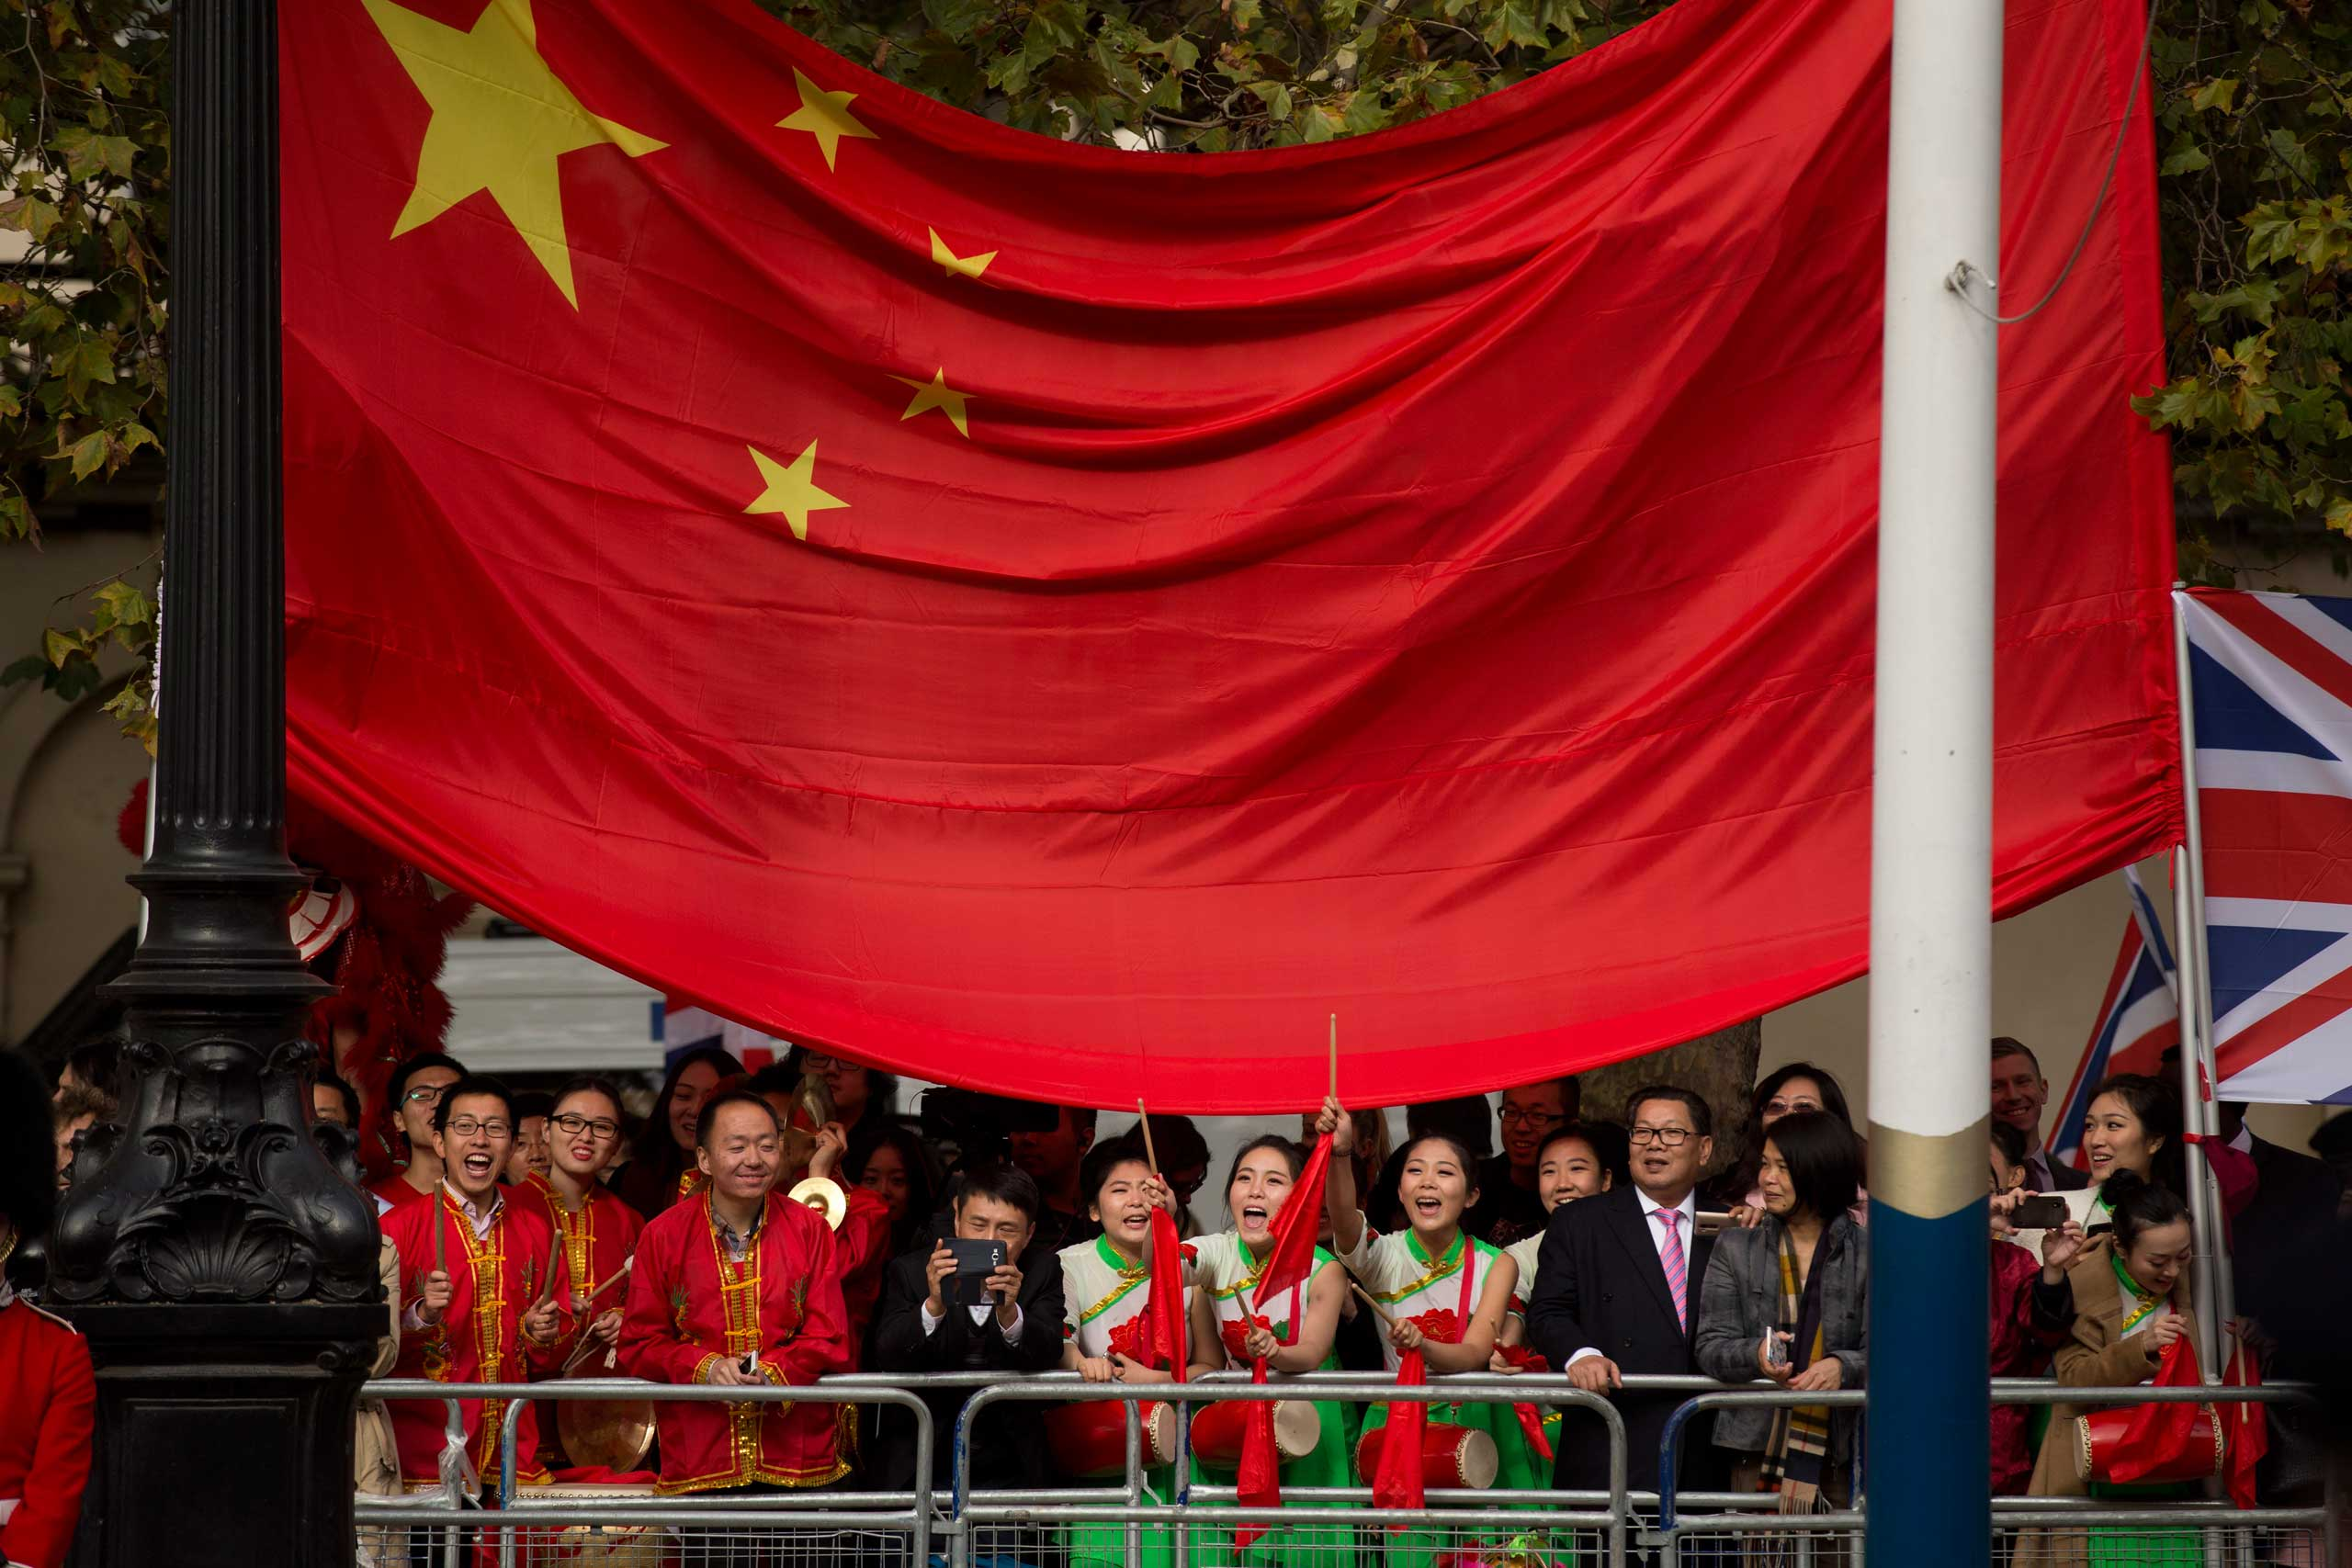 Supporters of President Xi stand under a large Chinese flag before the President passes by on a horse-drawn carriage with Britain's Queen Elizabeth II on the Mall en route to Buckingham Palace in London,  Oct. 20, 2015.